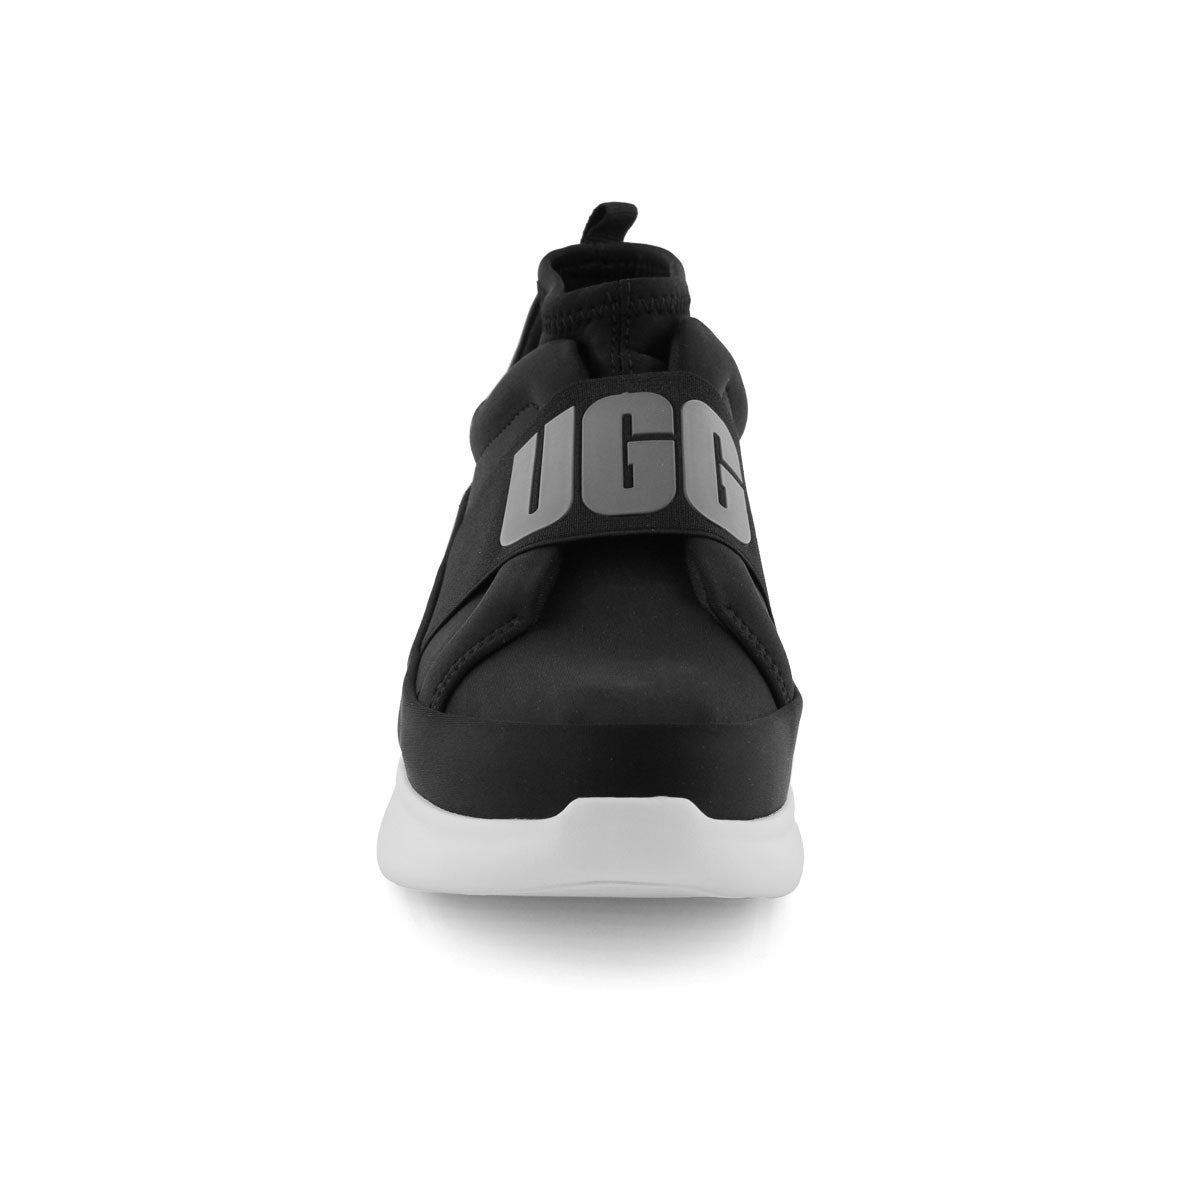 Lds Neutra blk/wht slip on sneaker